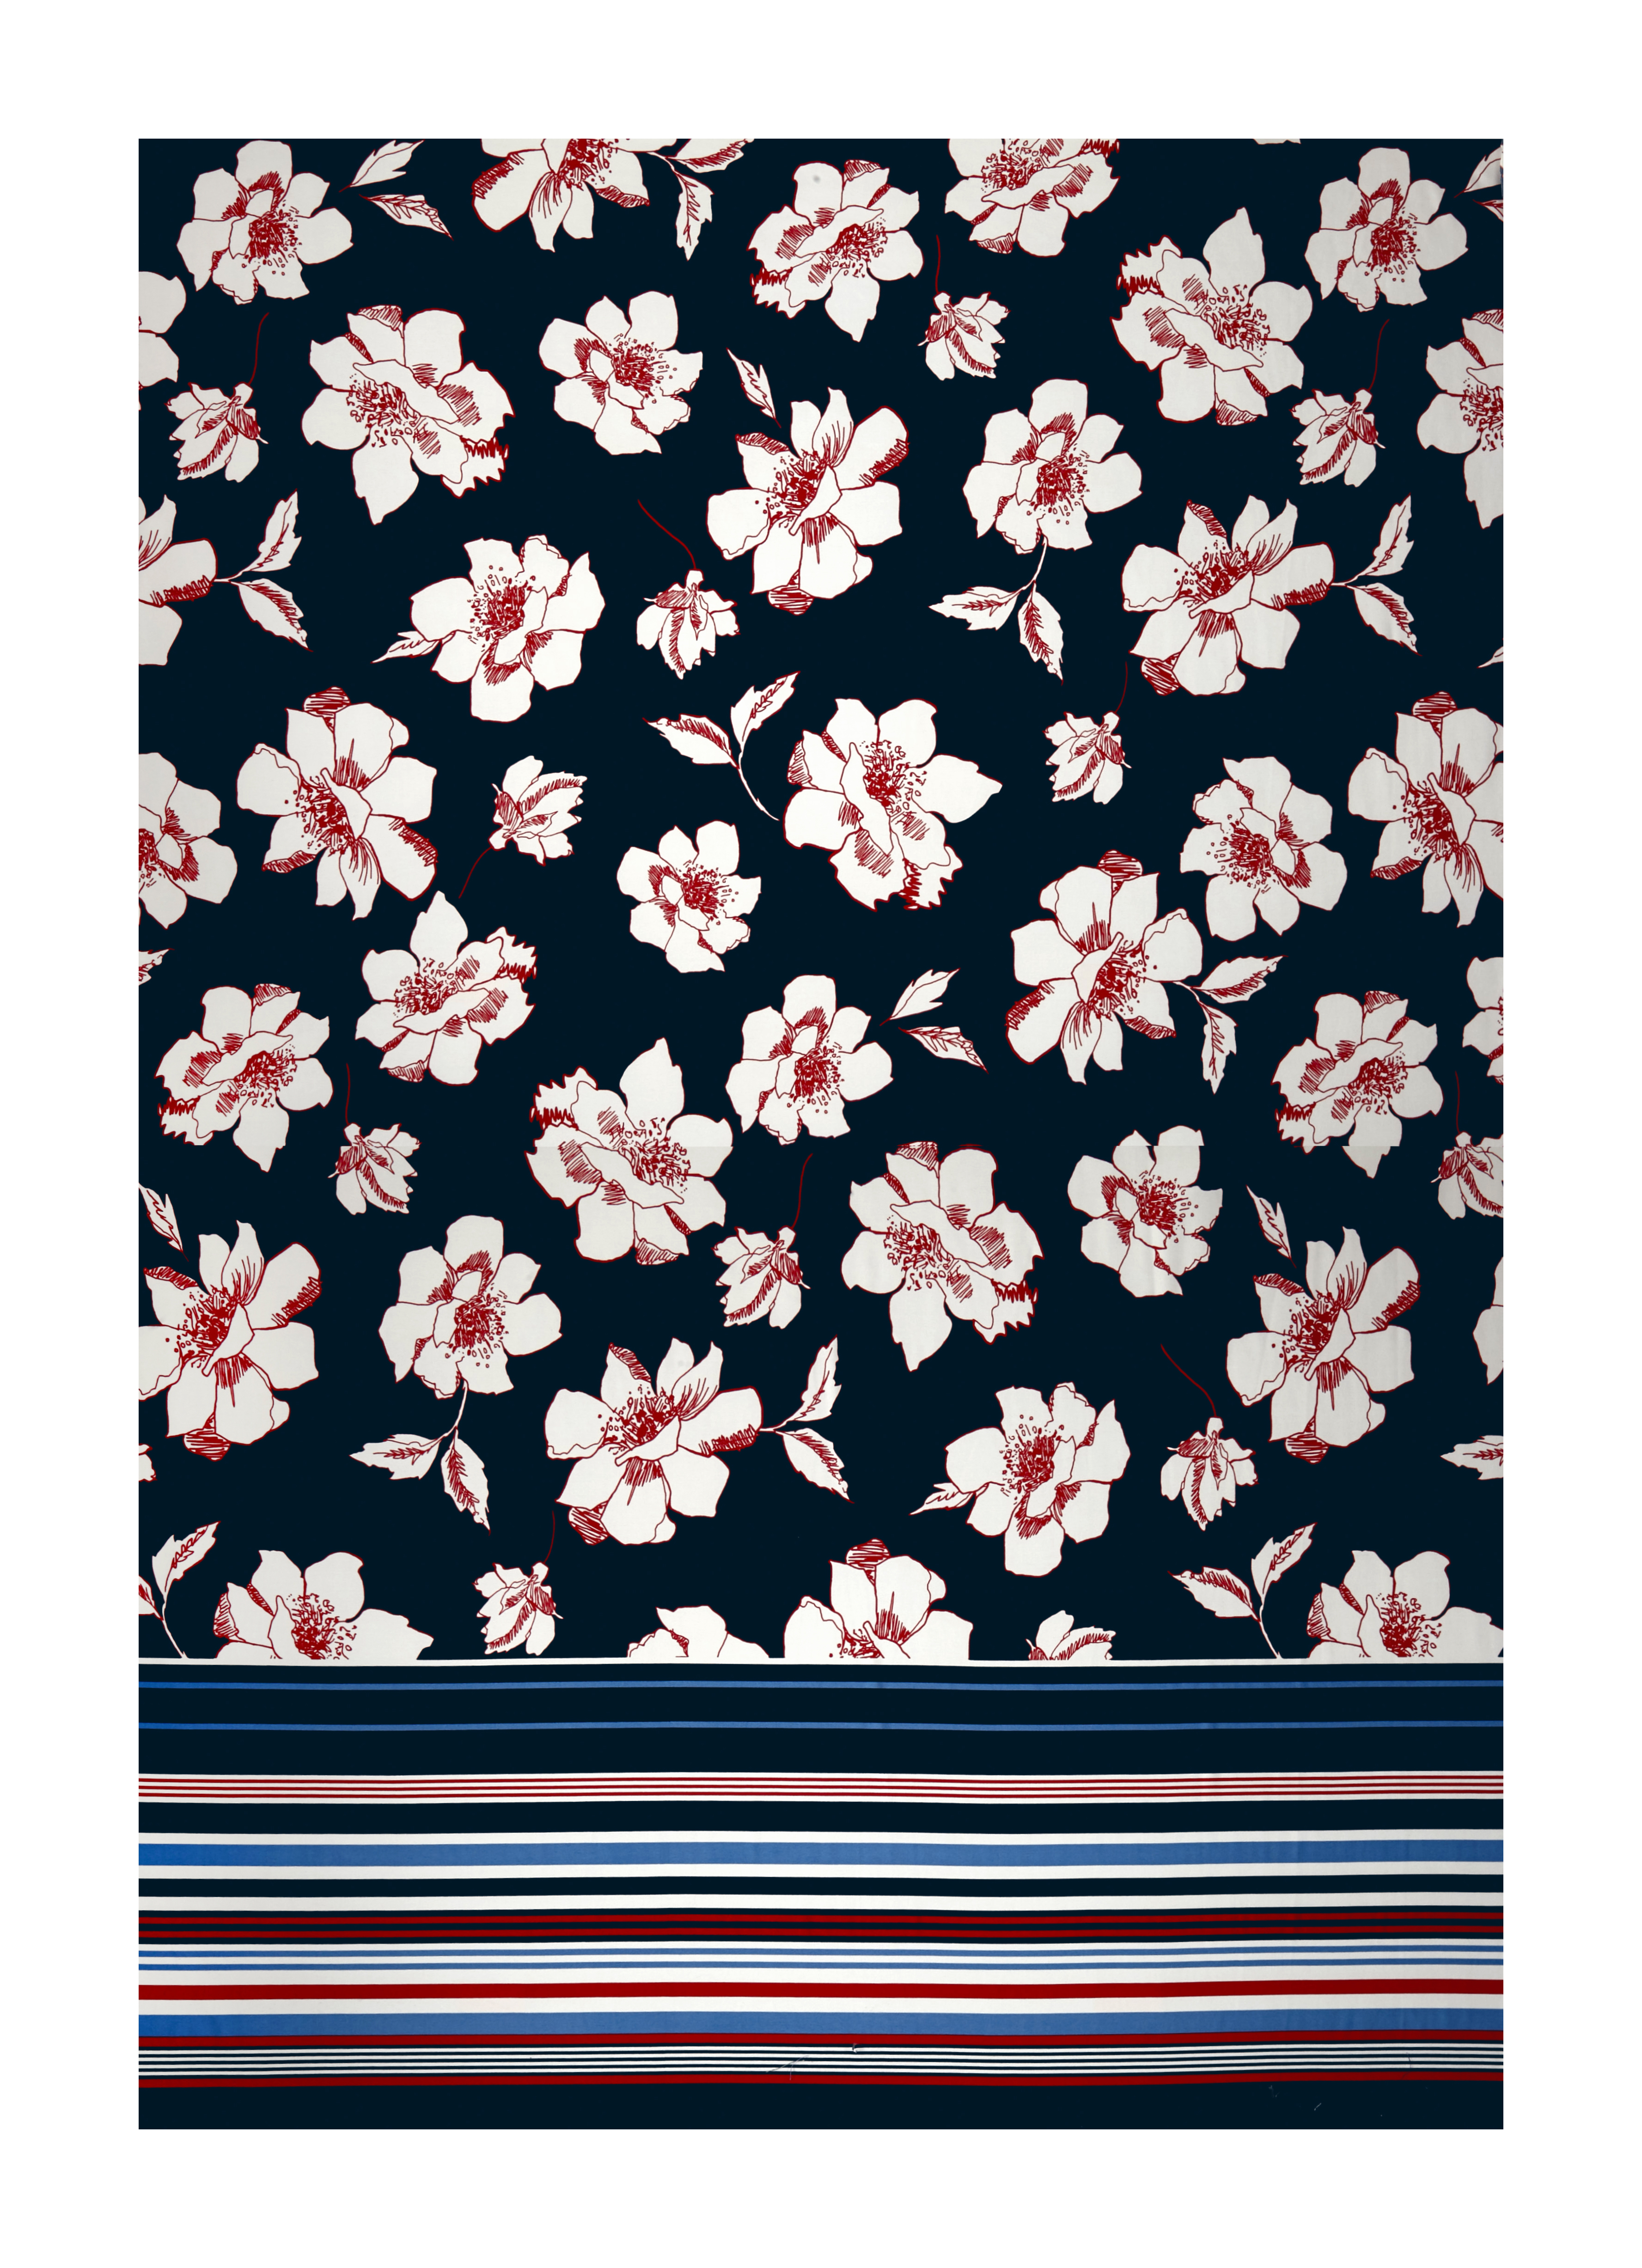 Sketched Floral Print Ity Knit Orange Blue And Pink Fabric